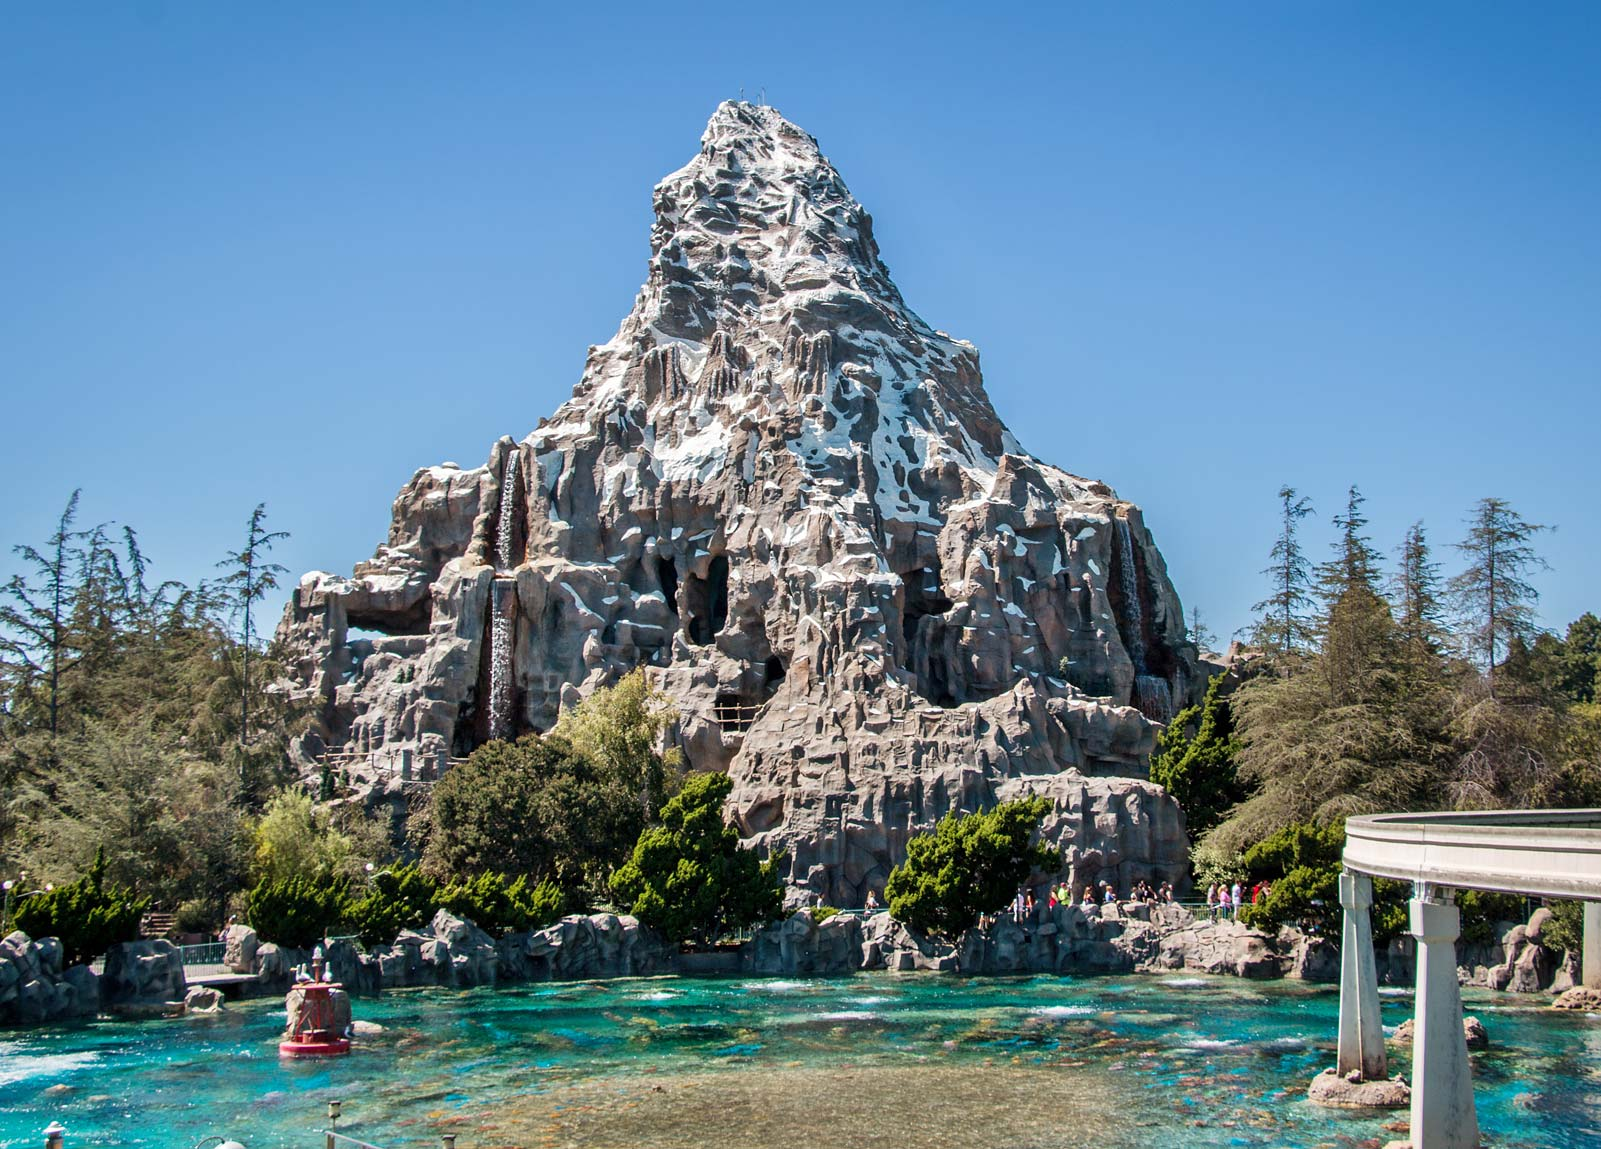 Motels Near To Disneyland Anaheim Ca